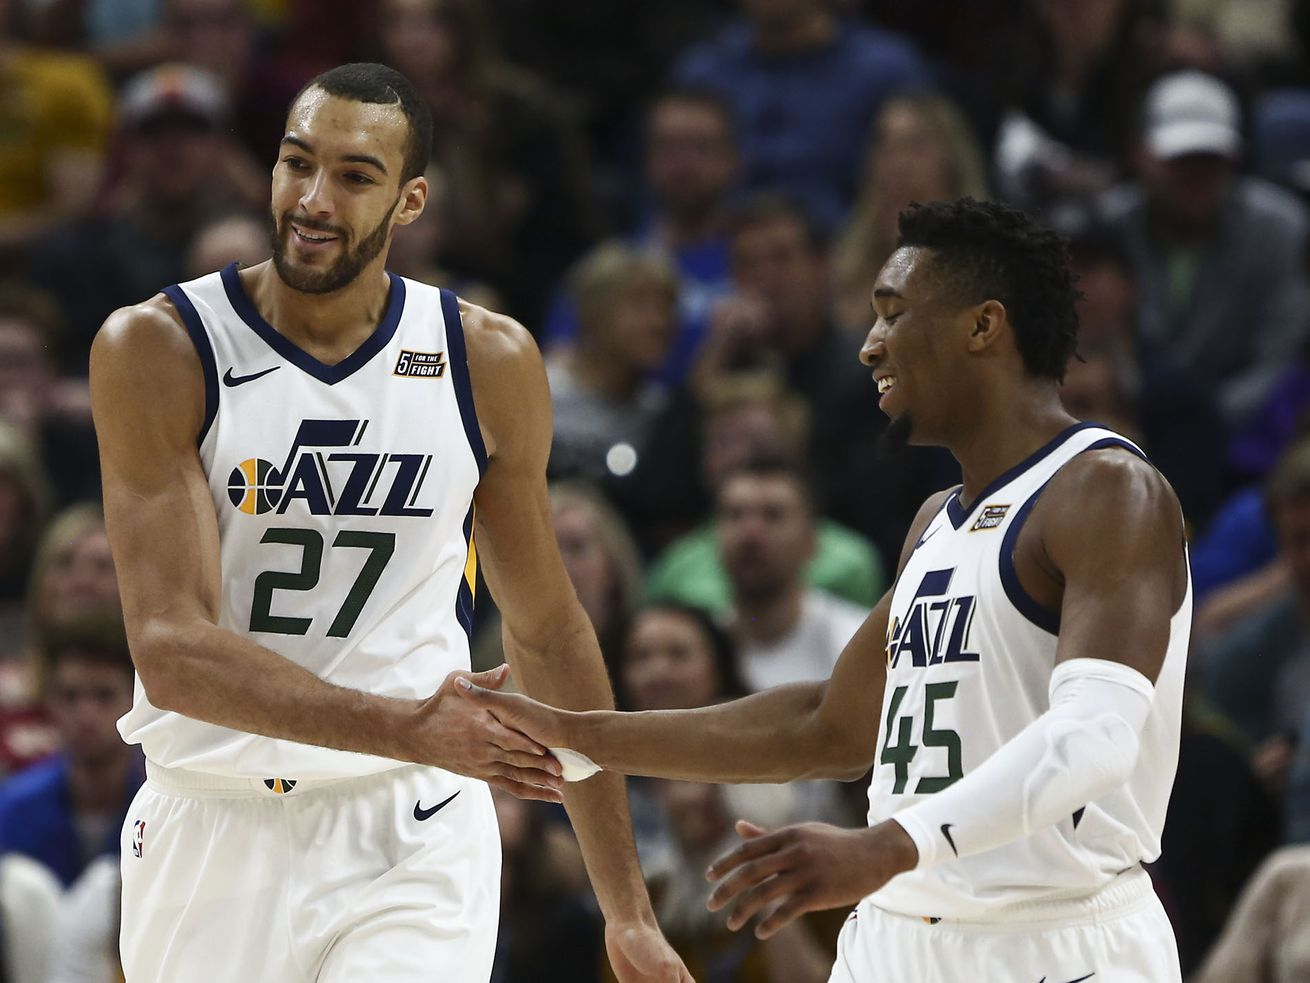 Utah Jazz center Rudy Gobert, left, and Jazz guard Donovan Mitchell during victory over Cleveland at Vivint Arena in Salt Lake City on Friday, Jan. 18, 2019.